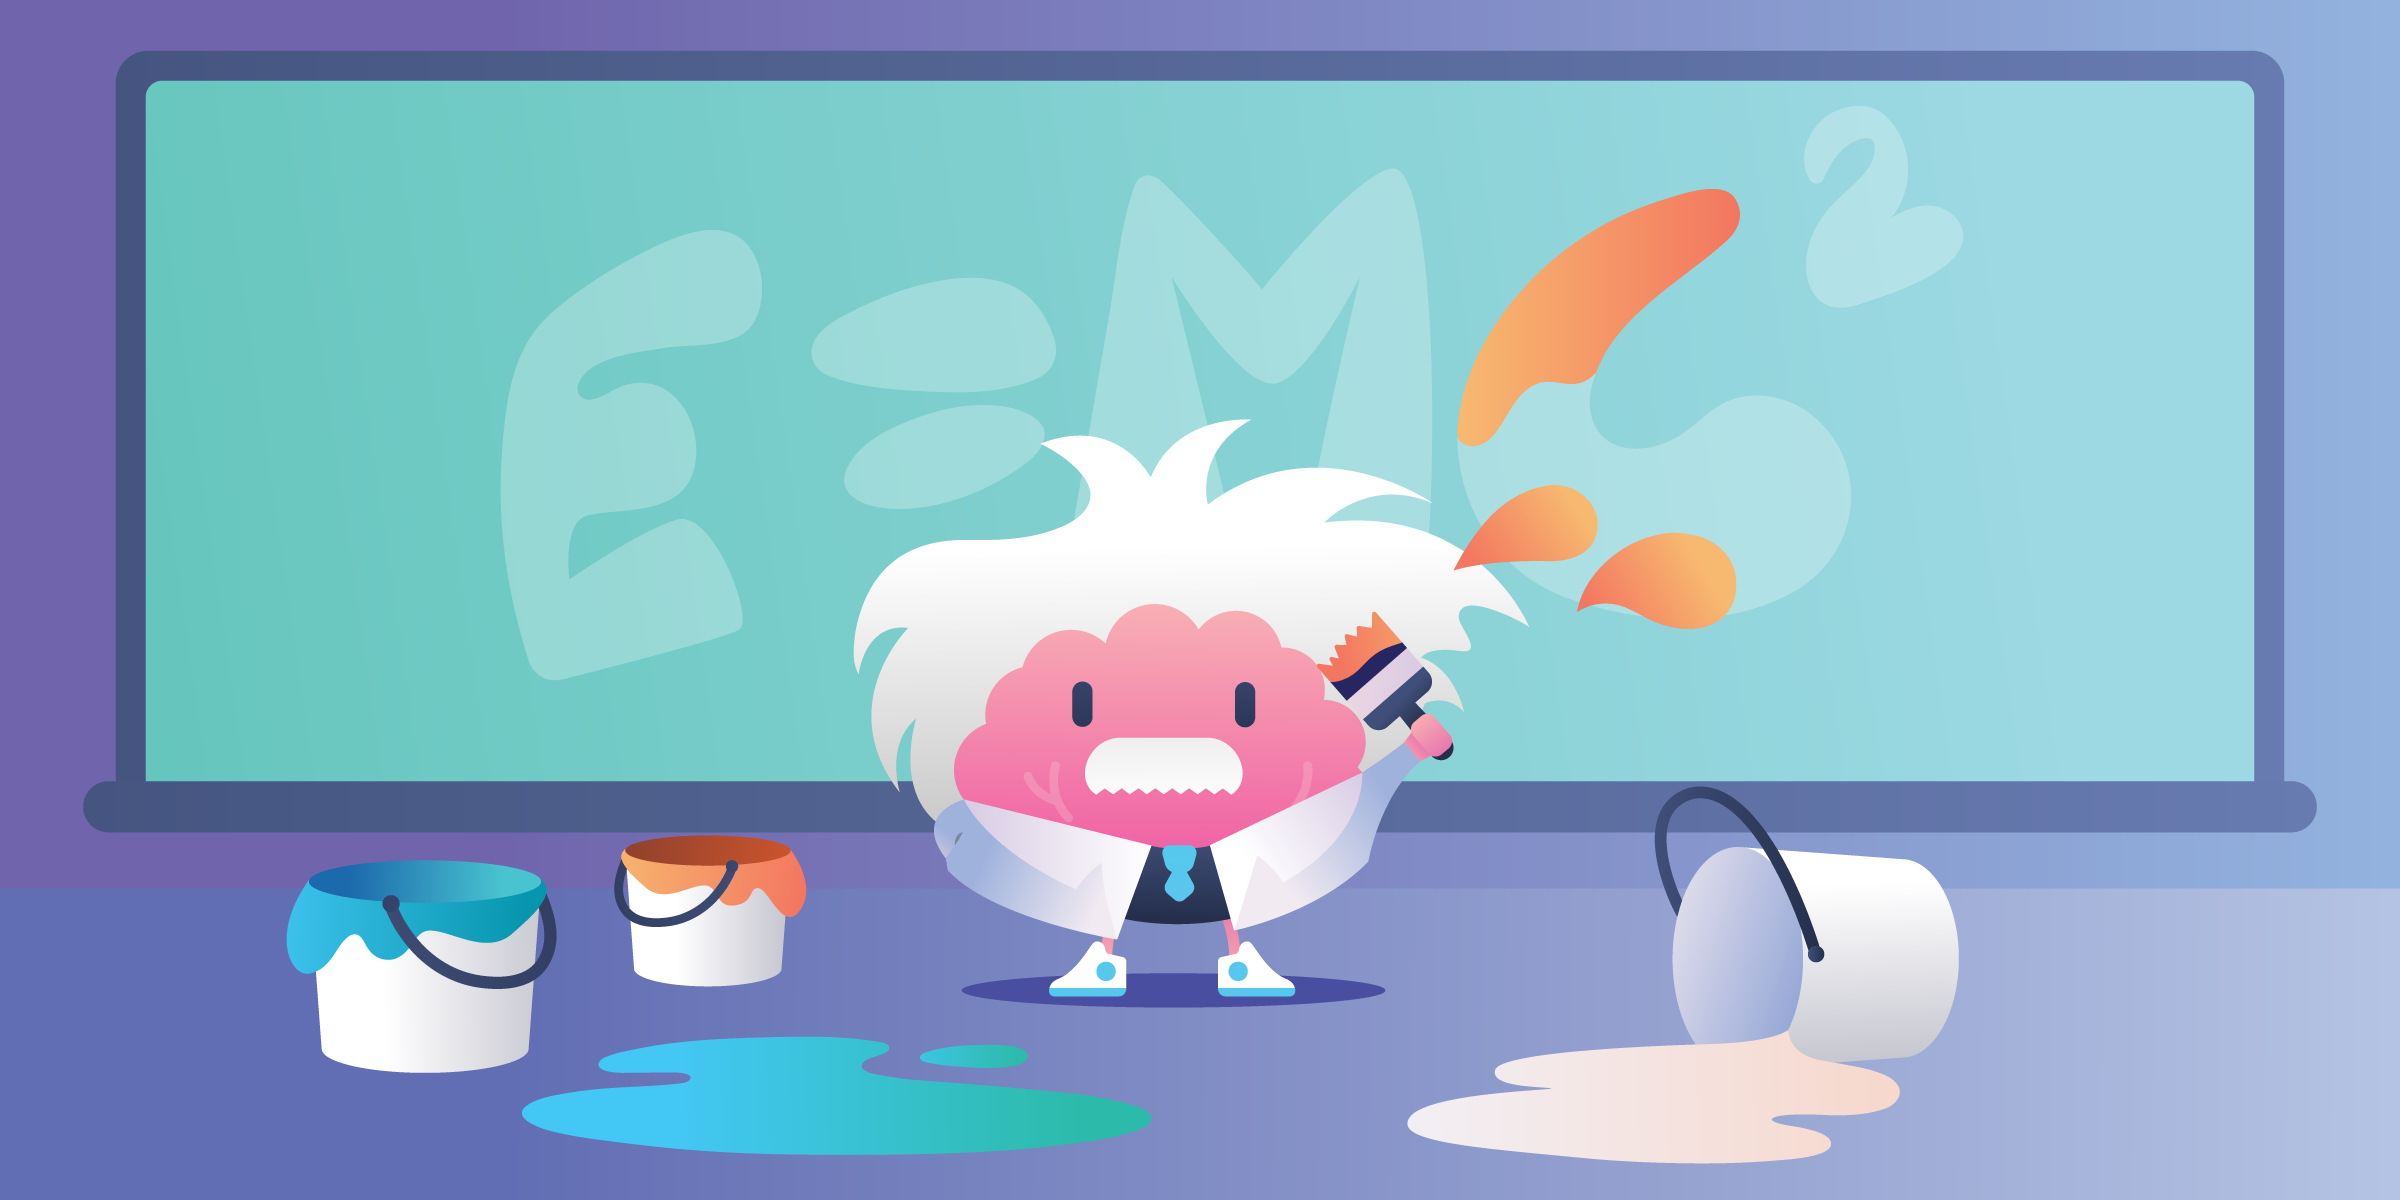 How To Boost Your Creativity The Einstein Way—With Combinatory Play